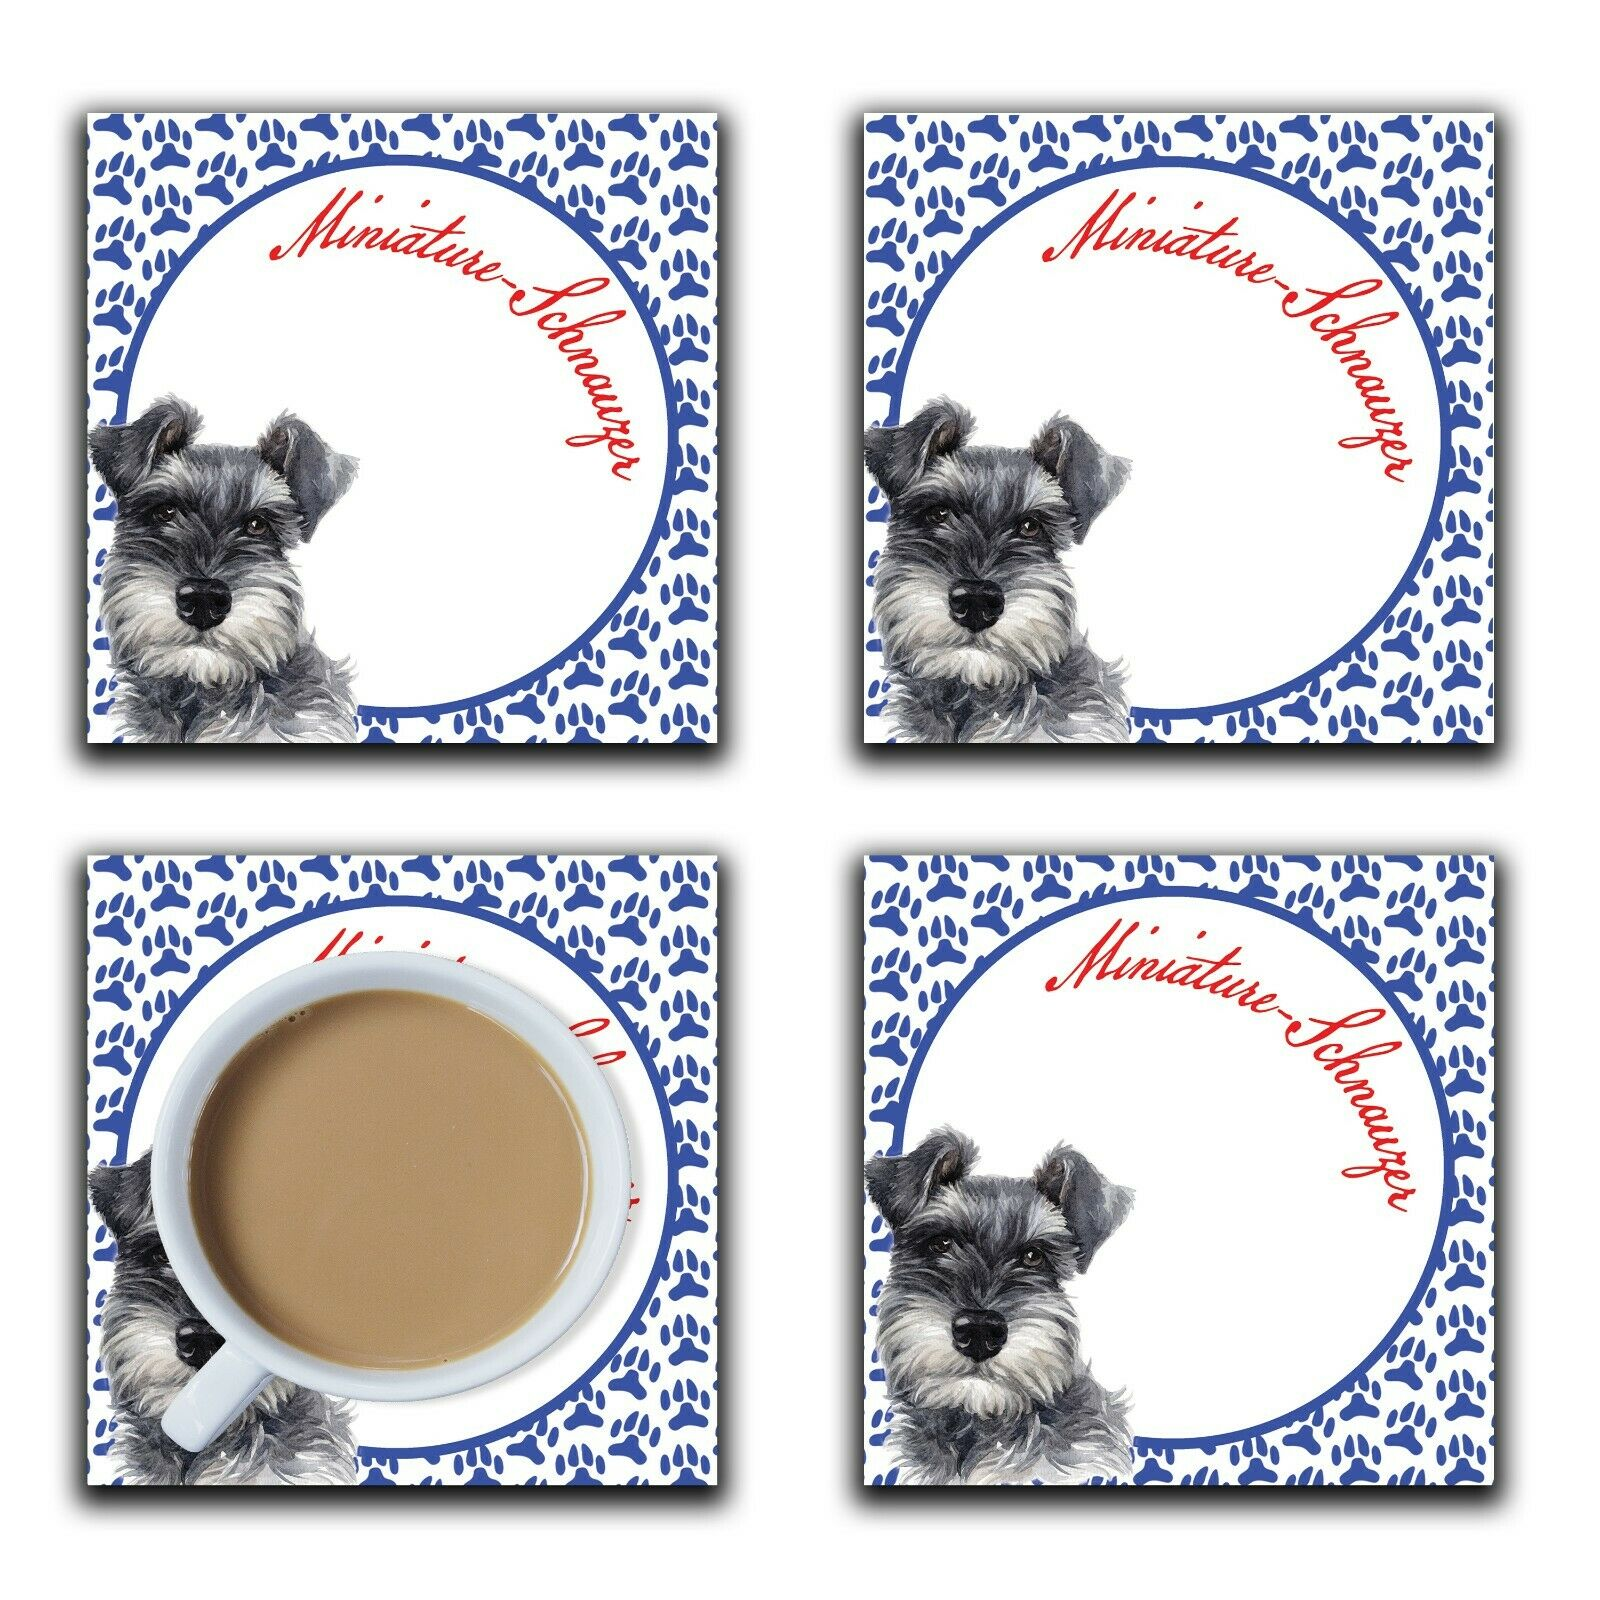 Embossi Printed Miniature Schnauzer , wood or ceramic tile, set of 4 Dog Coasters